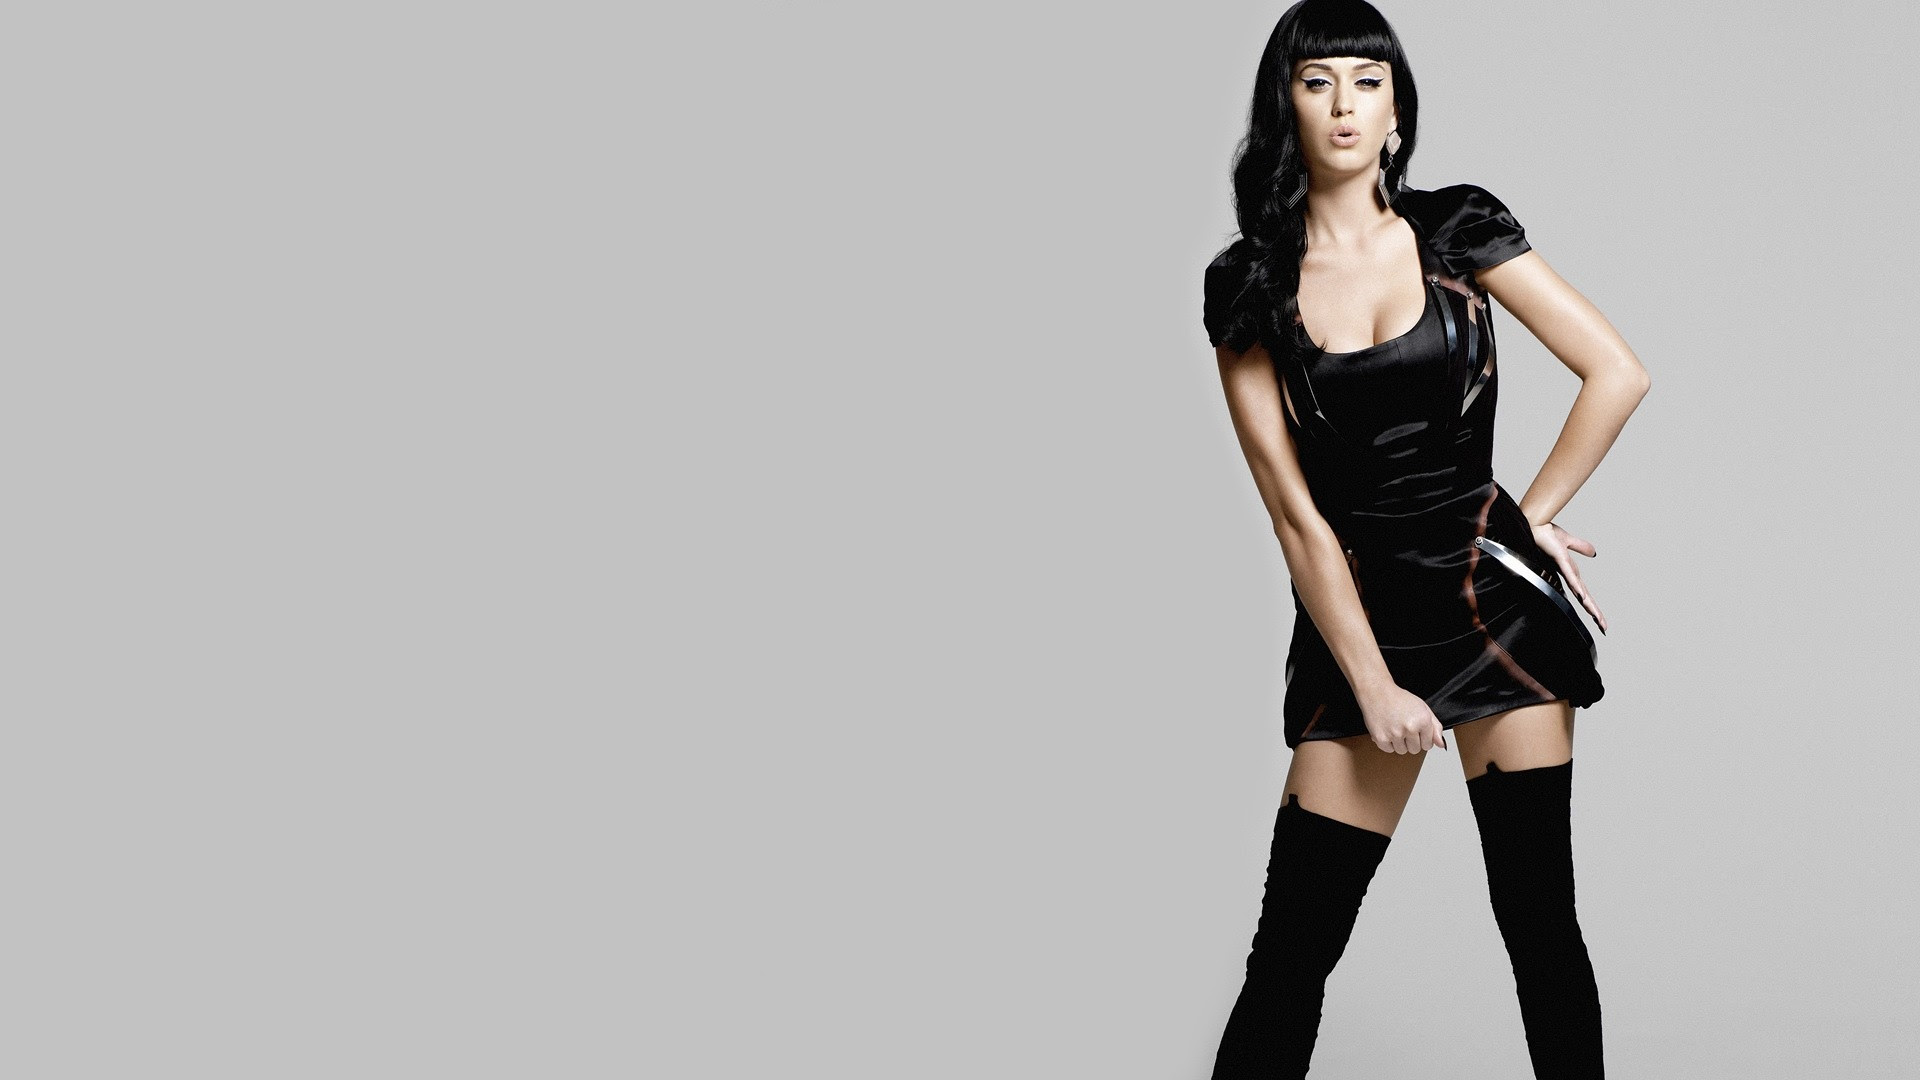 Katy Perry Hot Hd Wallpapers